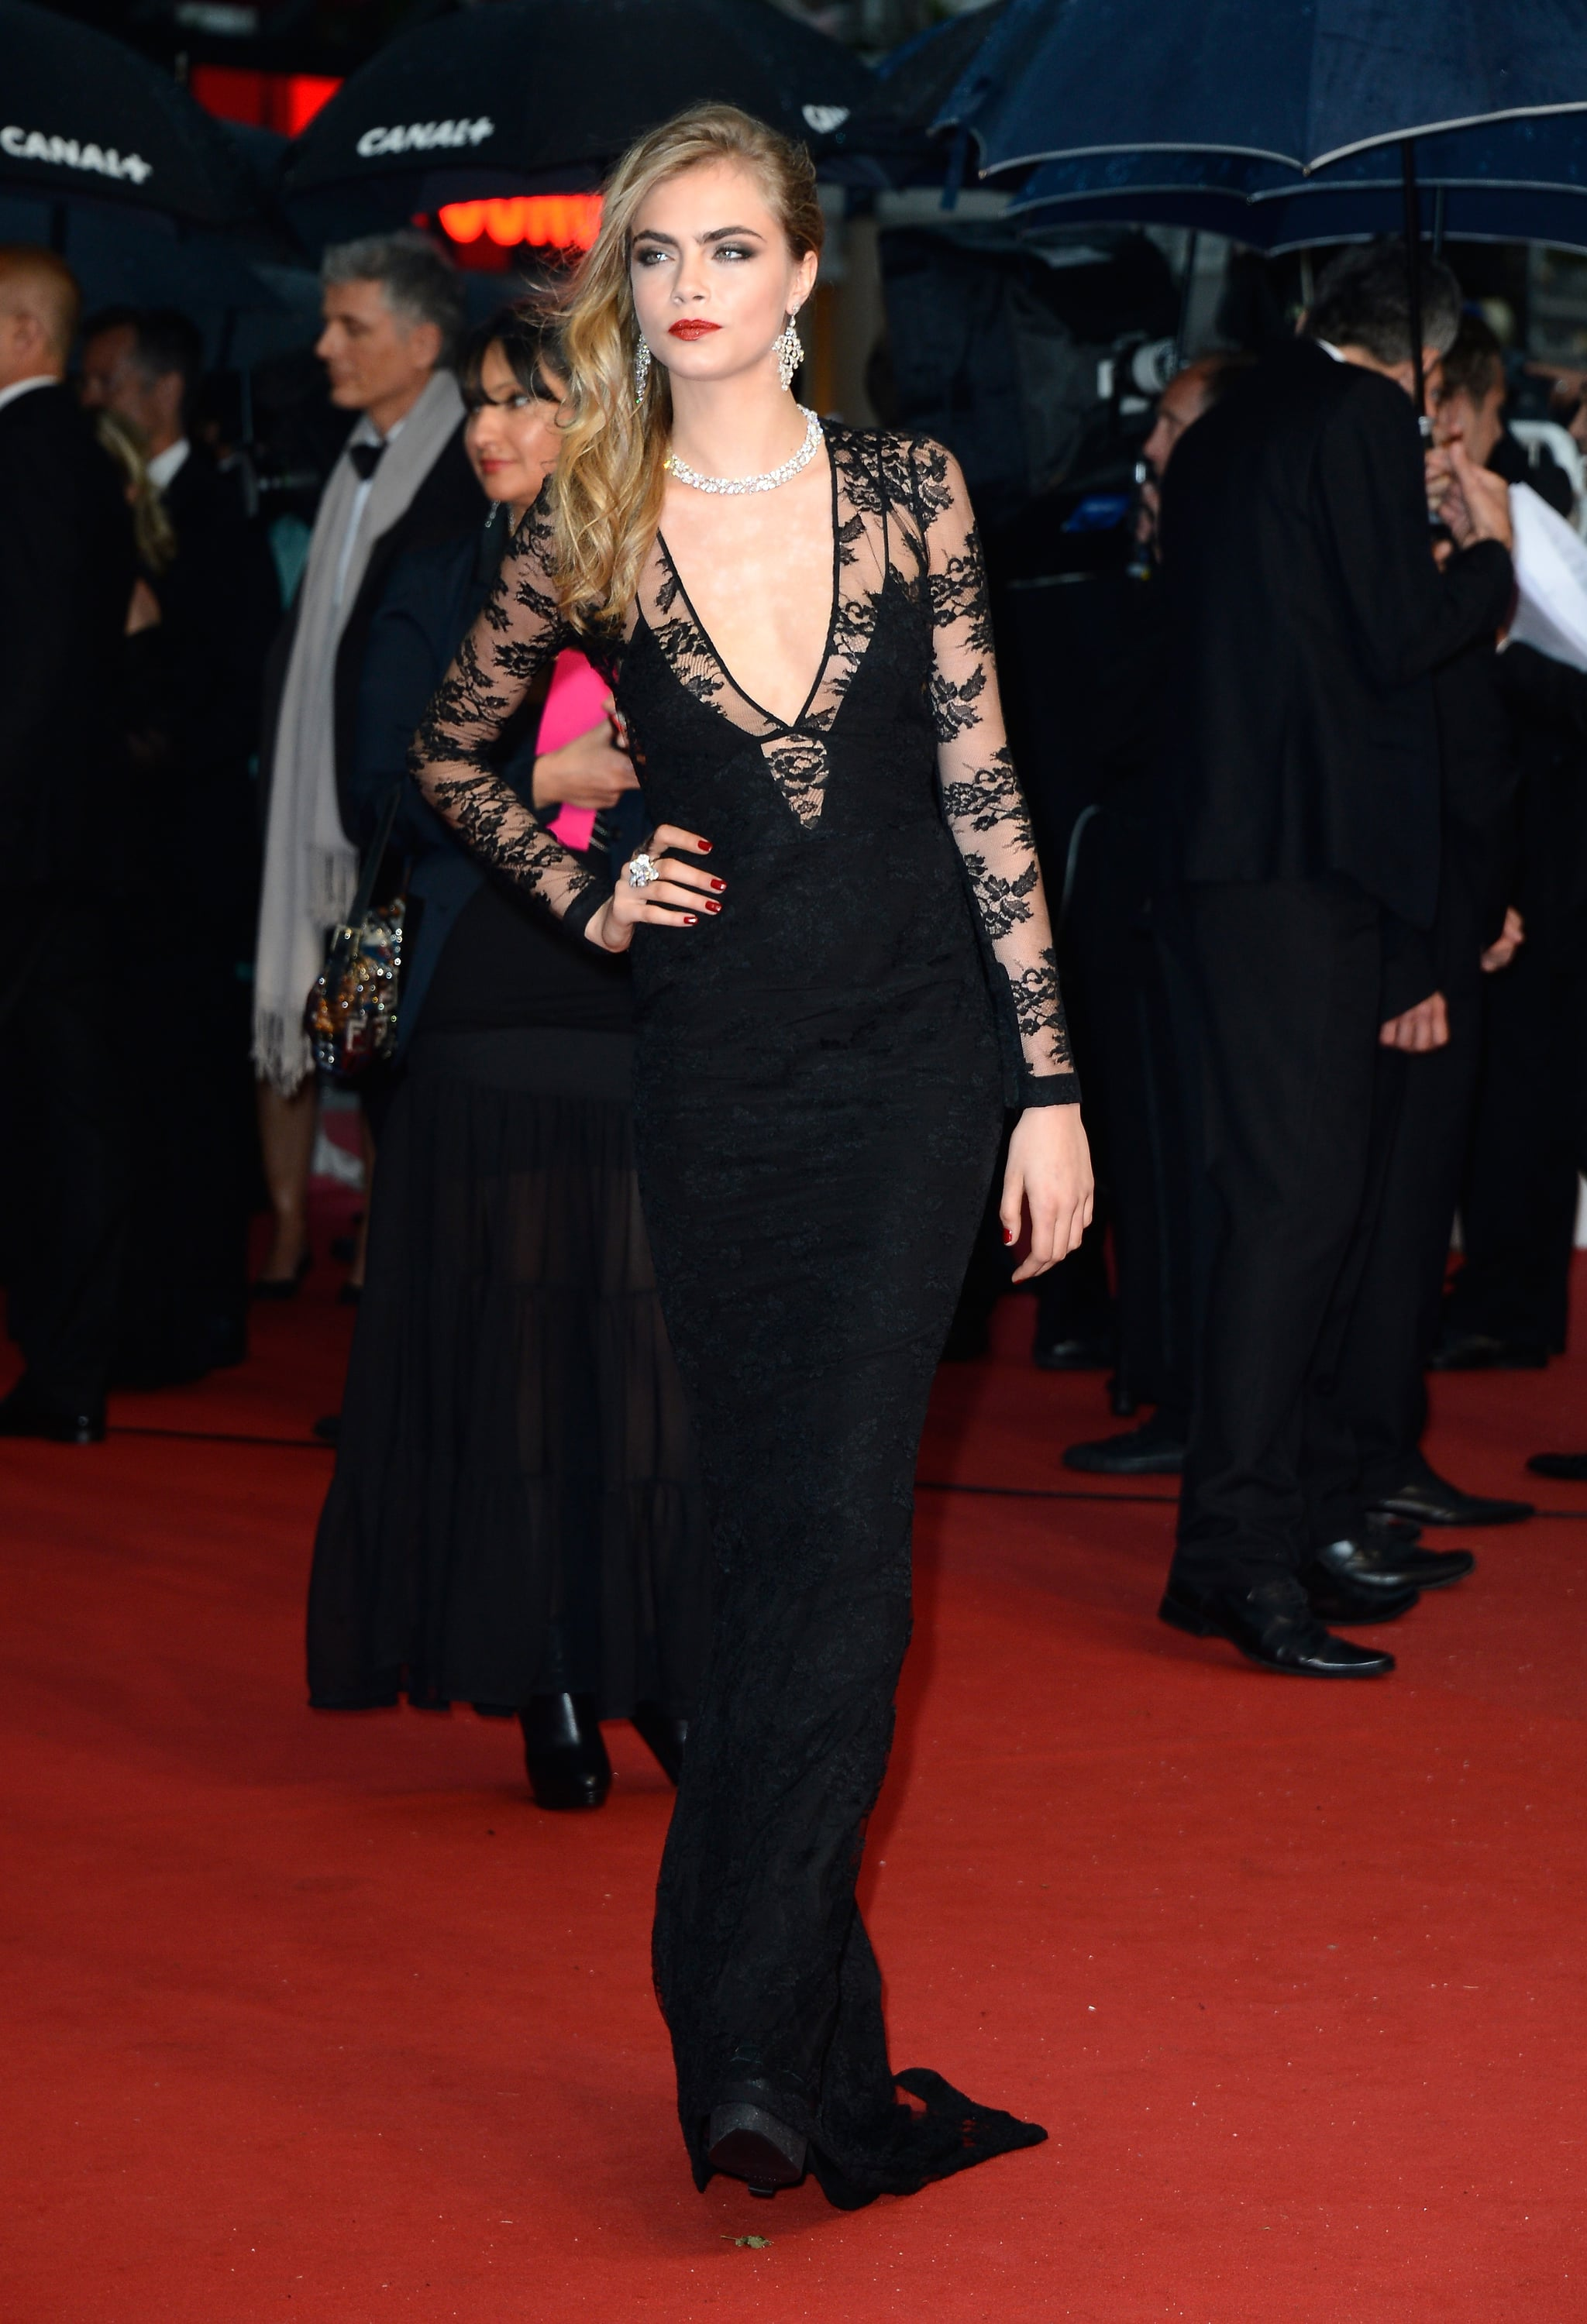 Cara Delevingne amped up the sex appeal in a body-con Burberry gown with a plunging neckline at the 2013 Cannes Film Festival.